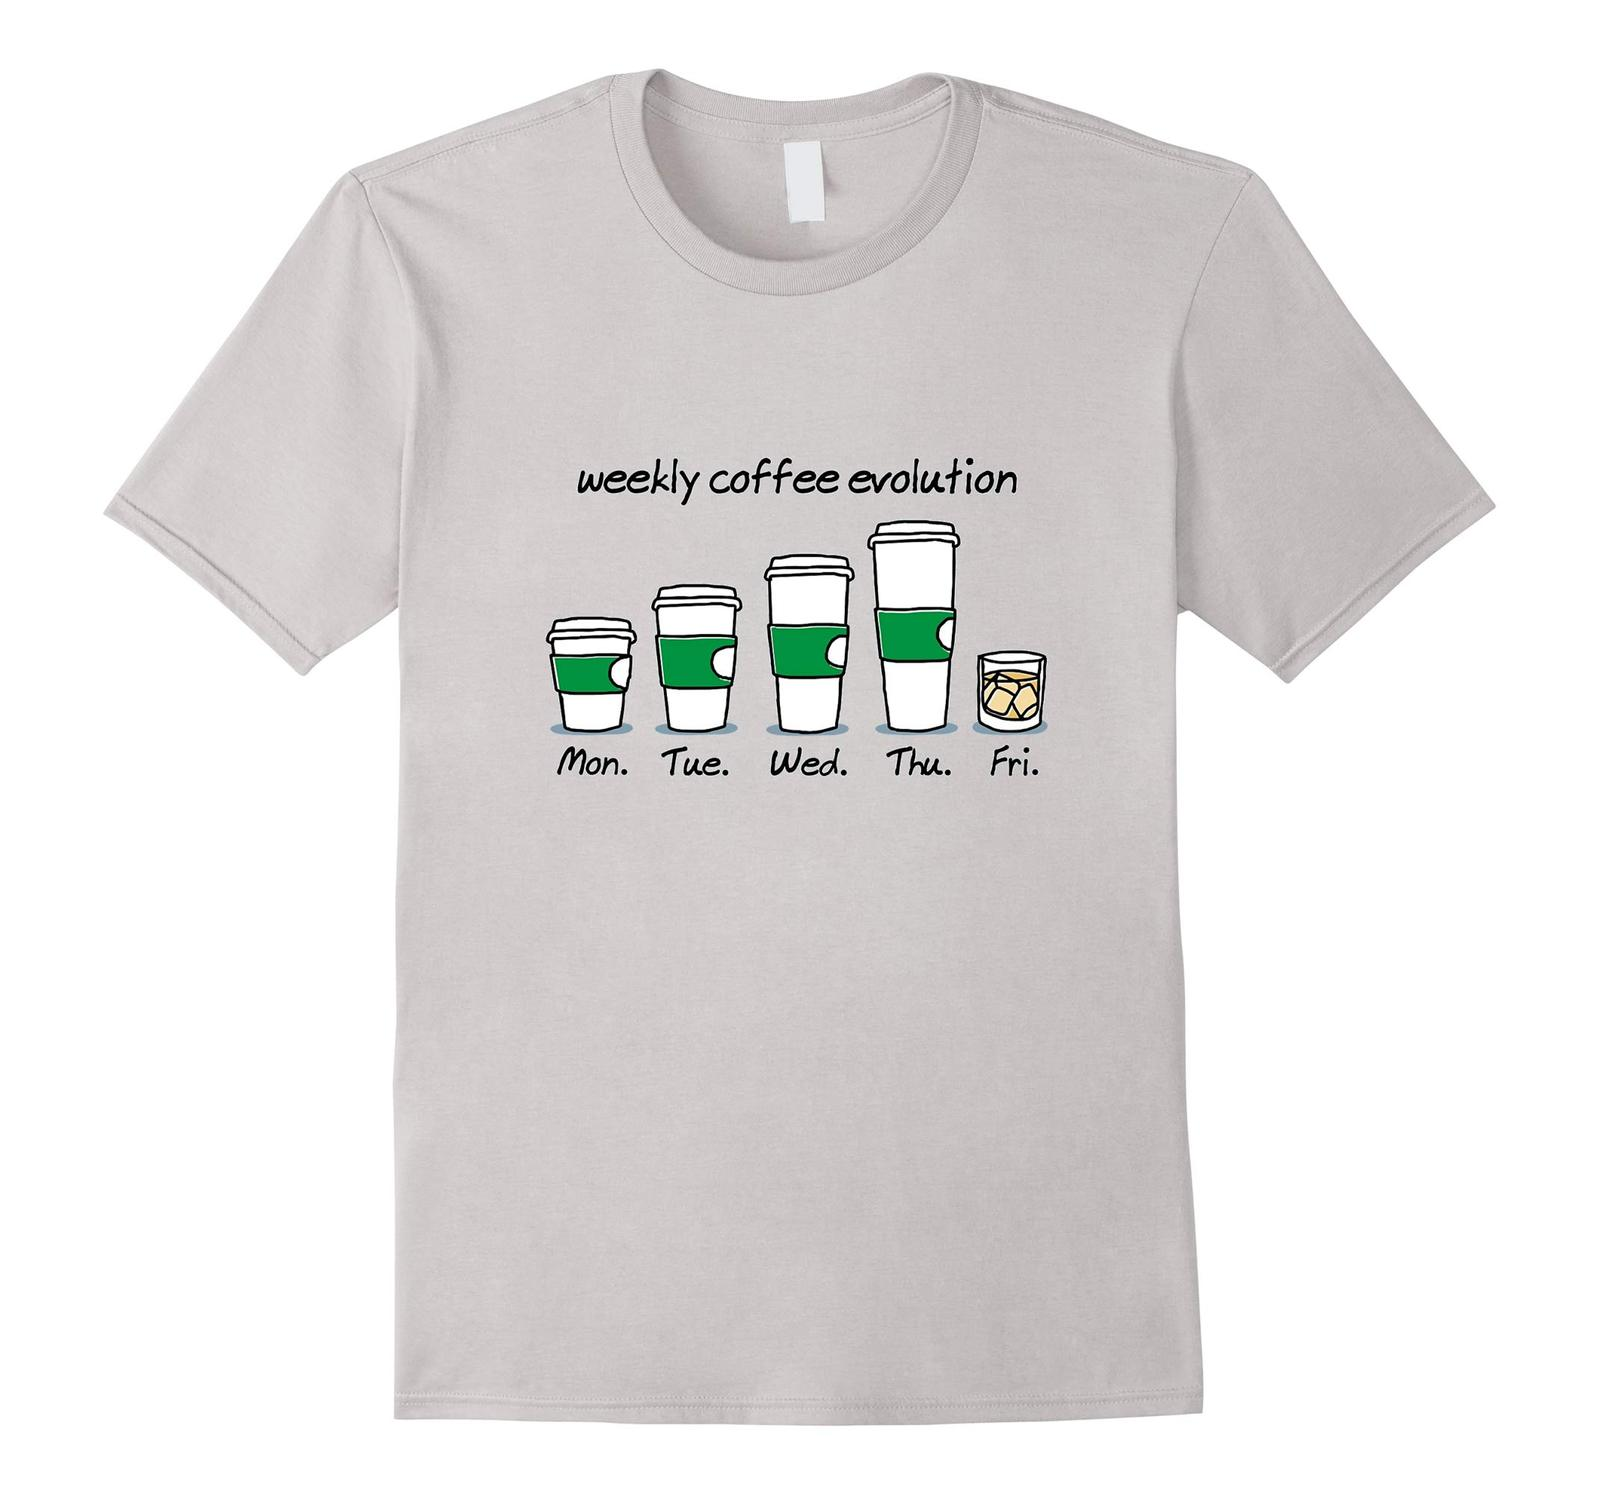 New Shirts - Weekly Coffee Evolution Drink T-Shirt Men image 2